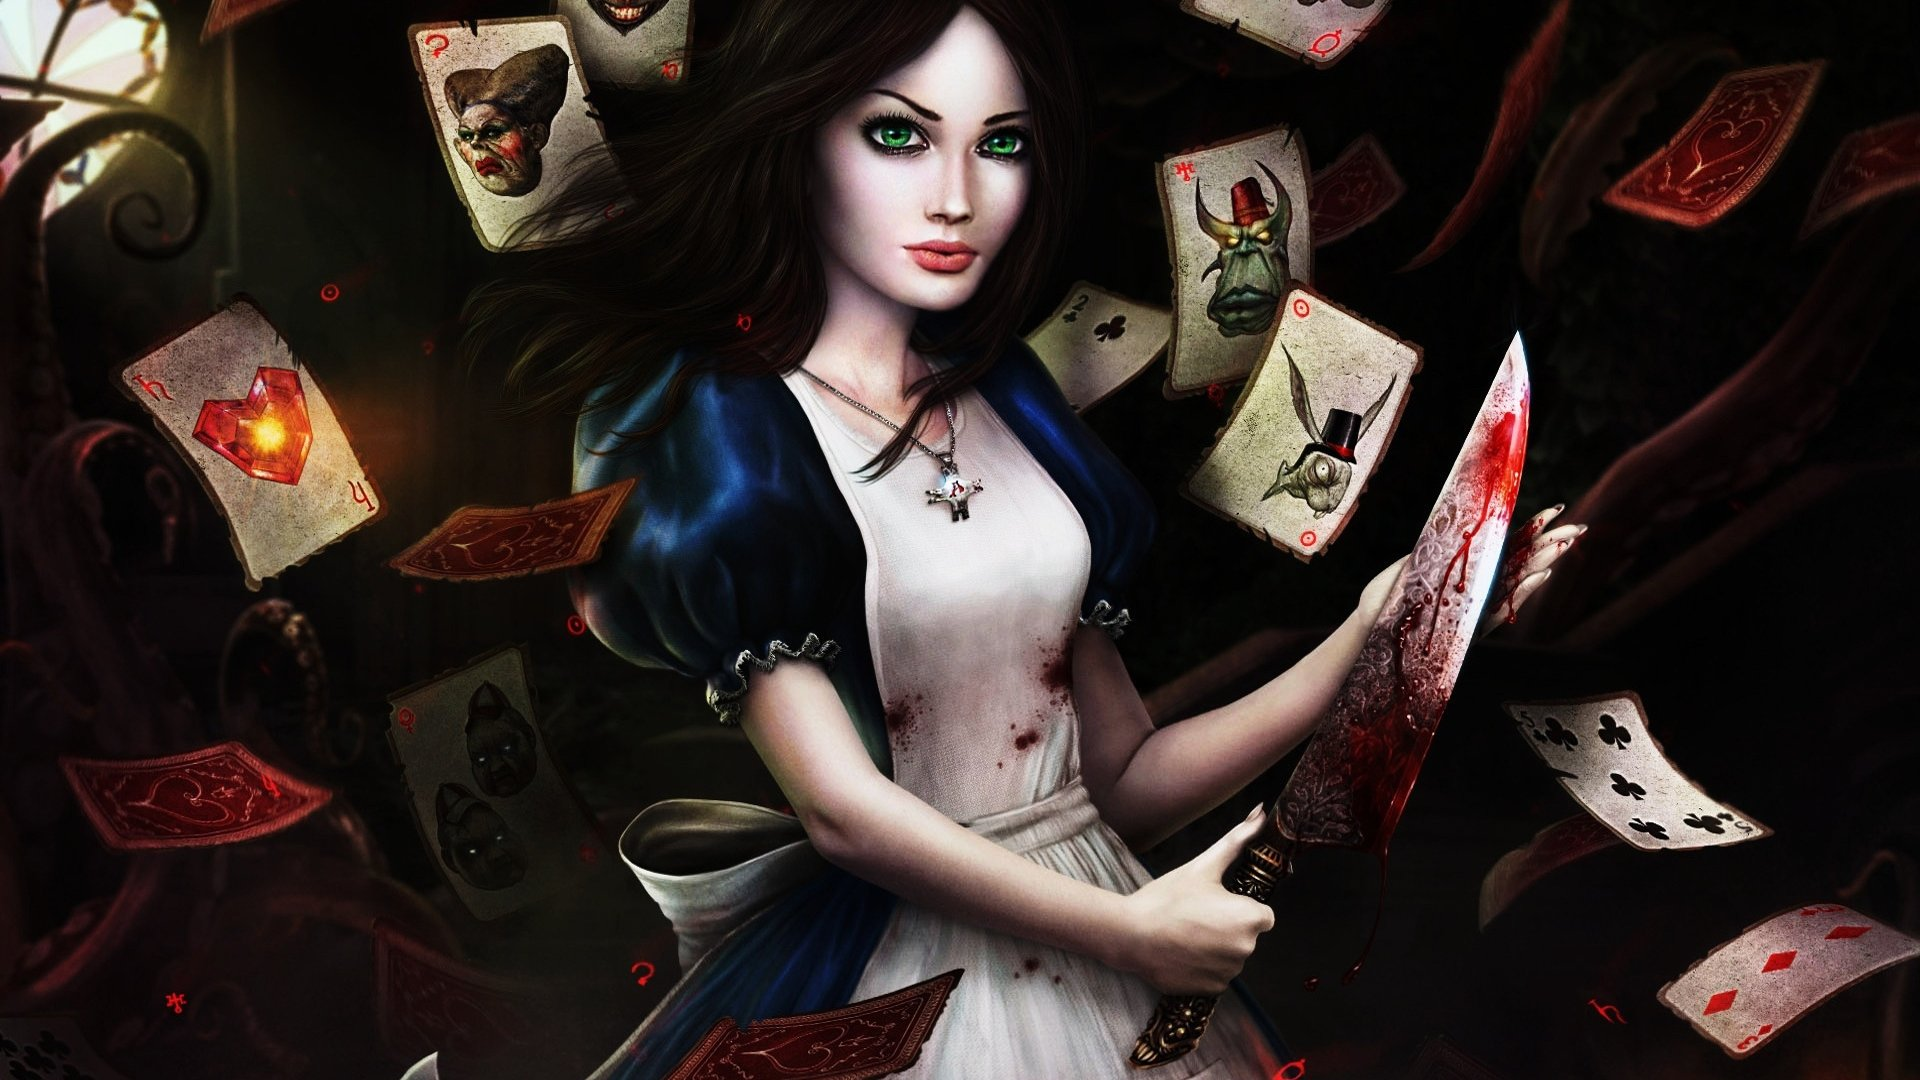 Best Alice: Madness Returns wallpaper ID:27653 for High Resolution 1080p computer